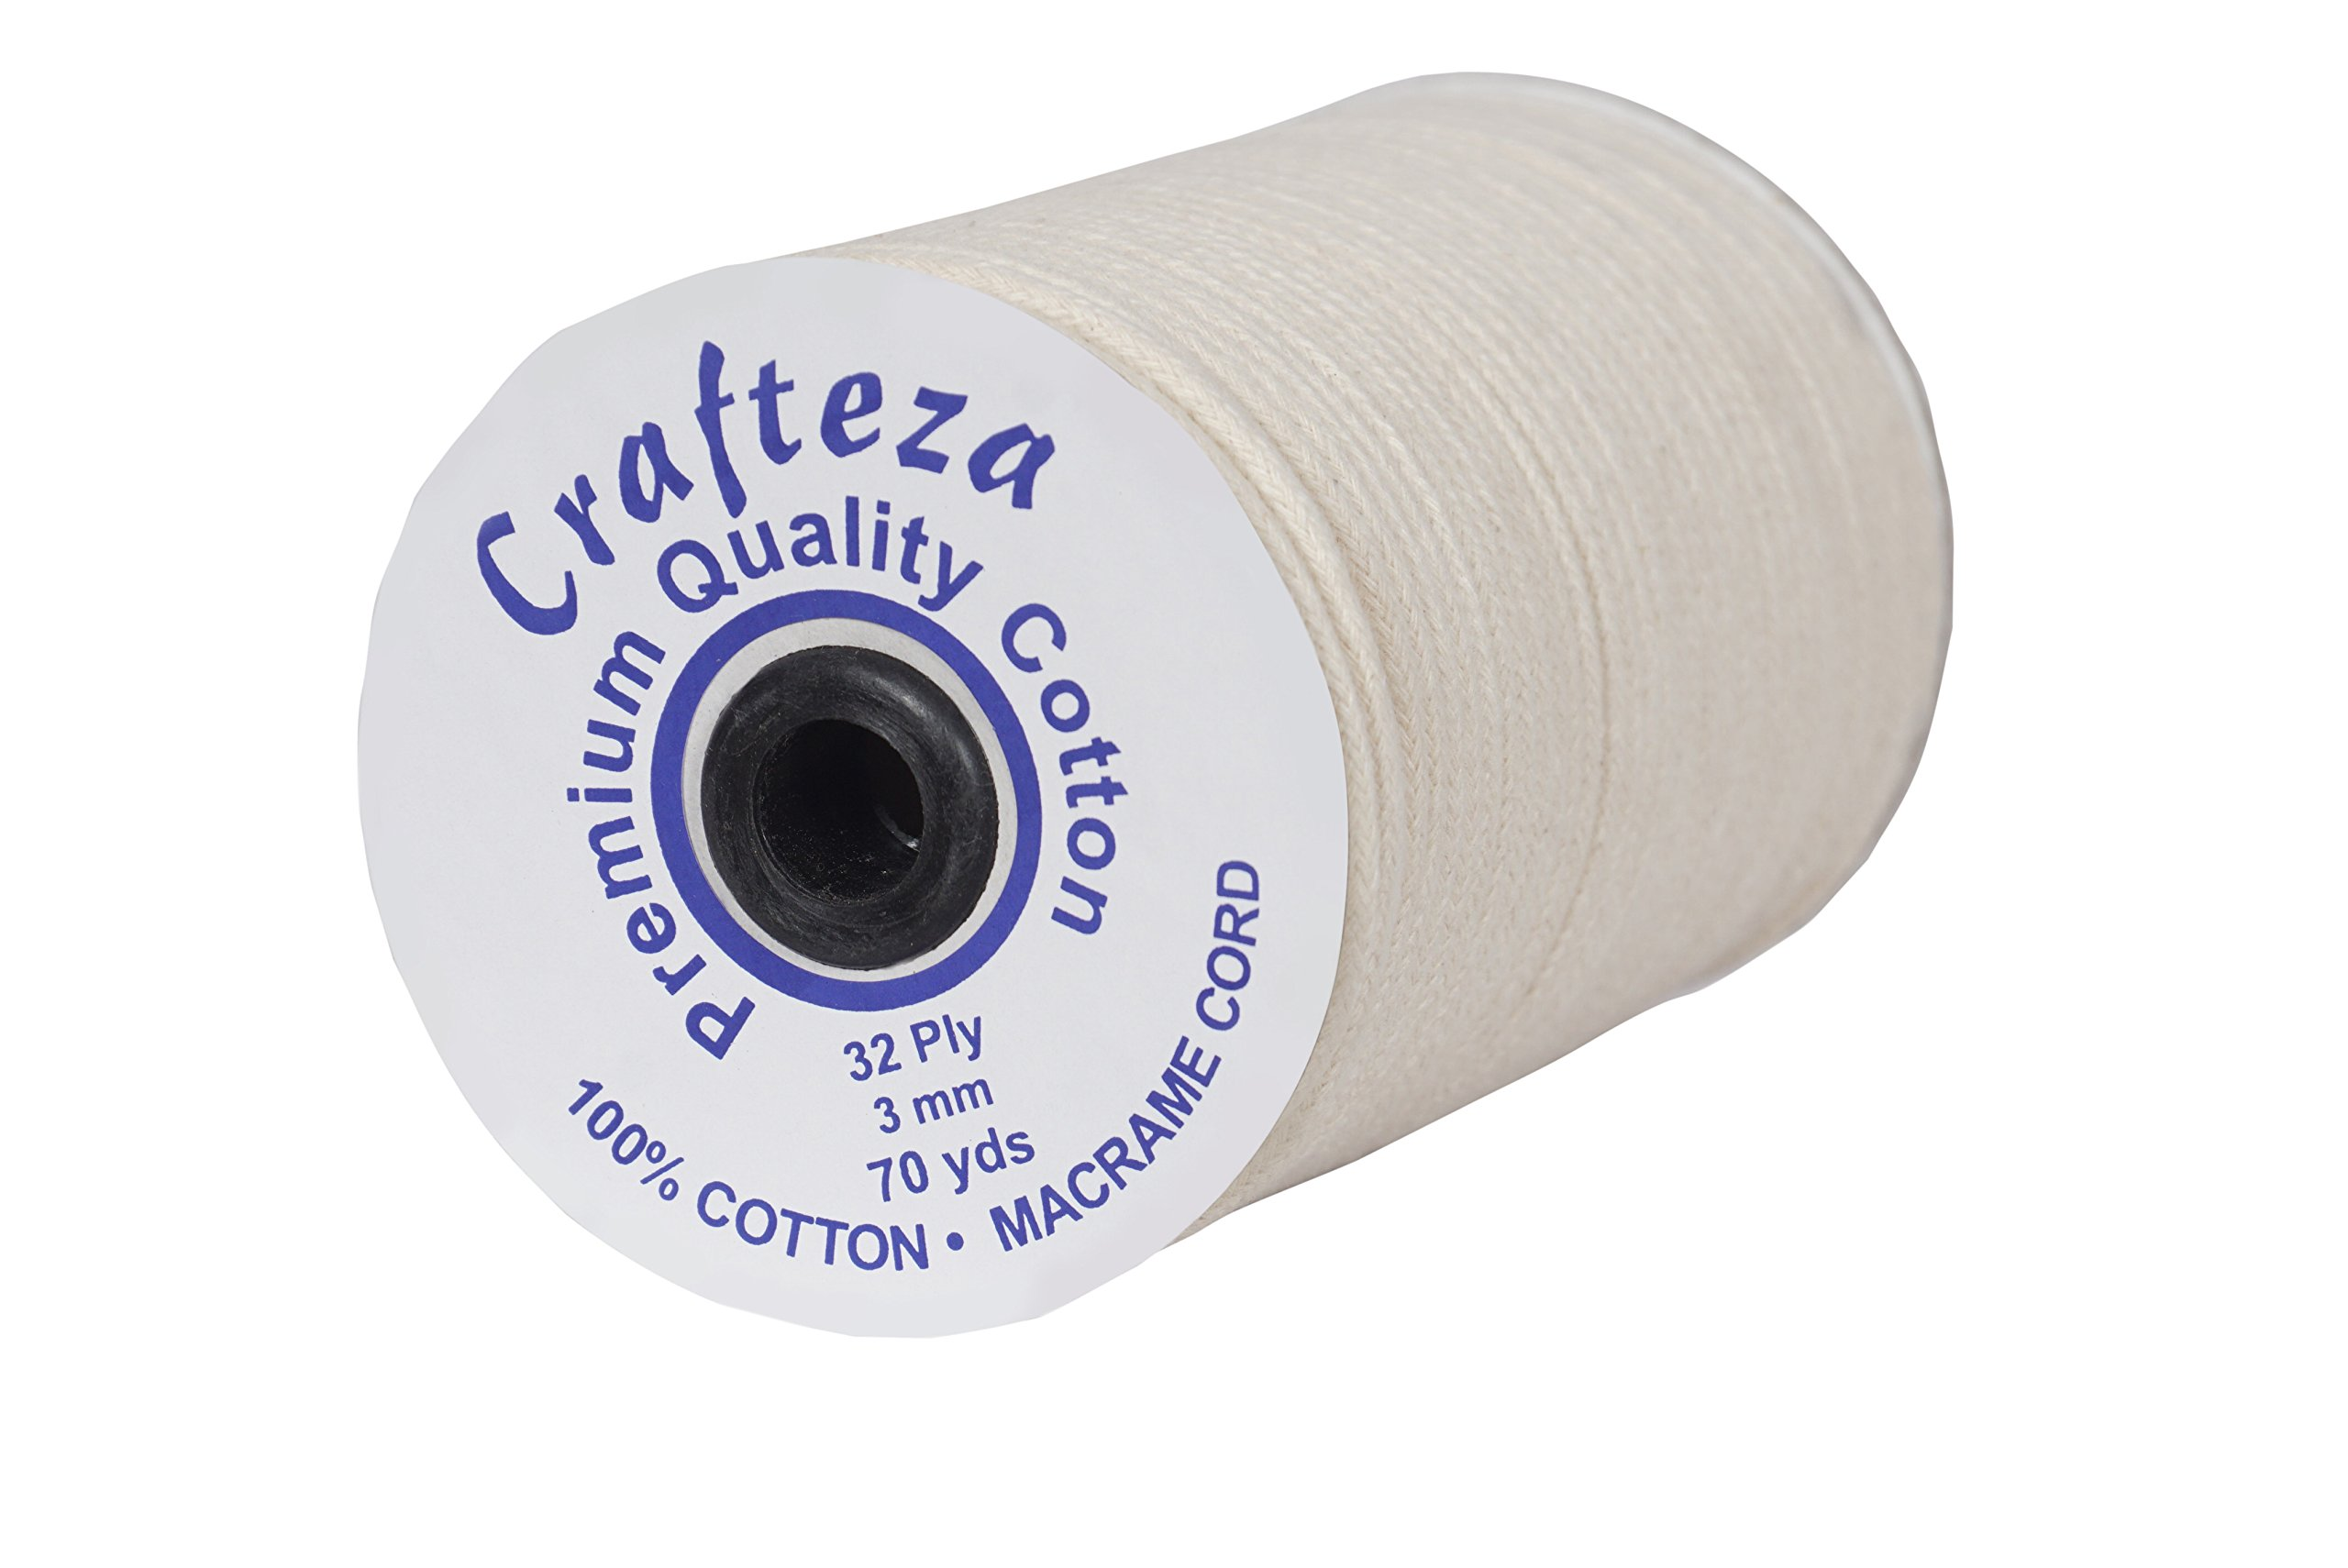 Braided Cotton Cord | 1/8 inch diameter by 210 ft Length | 32-Ply 3mm X 70 Yards (about 64 meters) | Natural Virgin Cotton - Macrame Tapestry Wall Hangings Plant Hangers Clothesline Cotton Rope